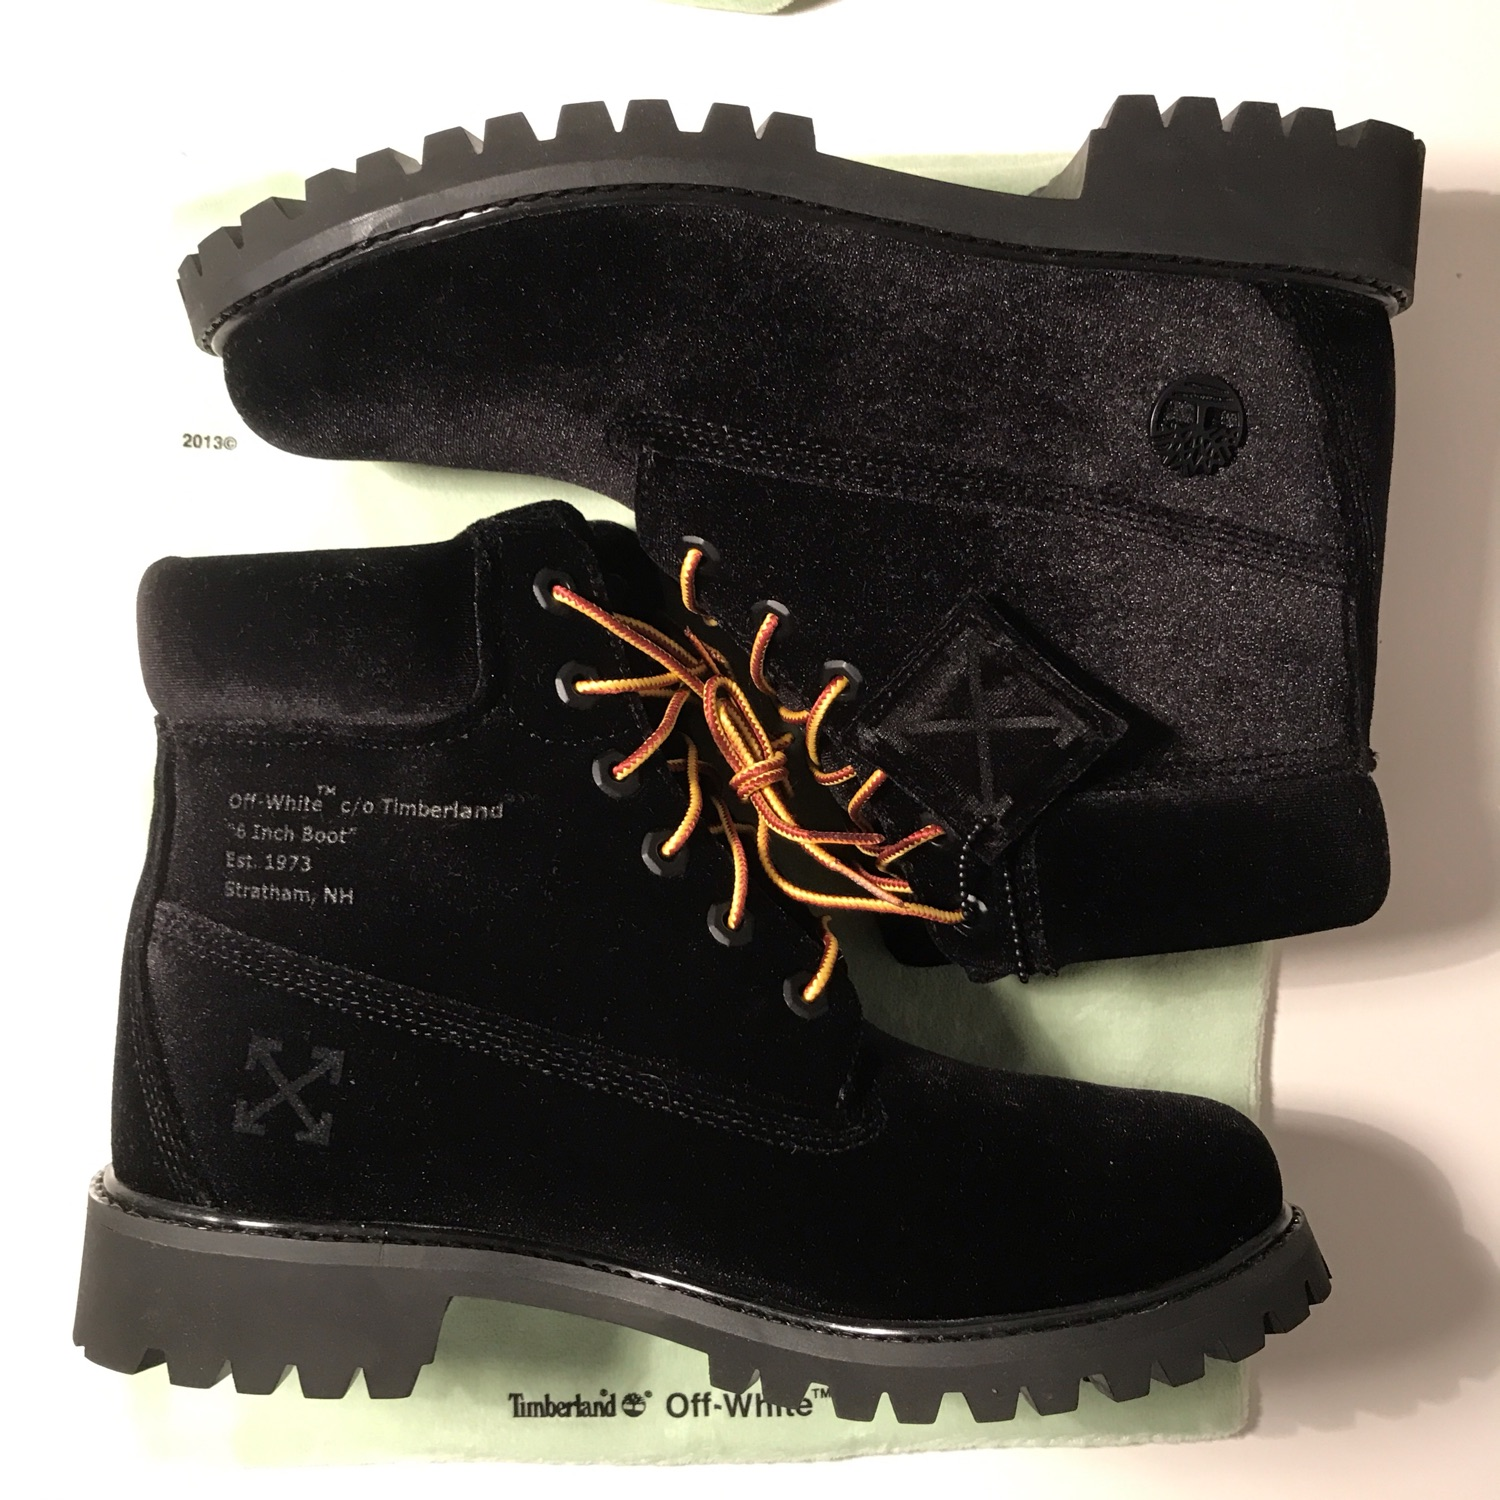 Timberland X Off White 6-Inch Boot Black